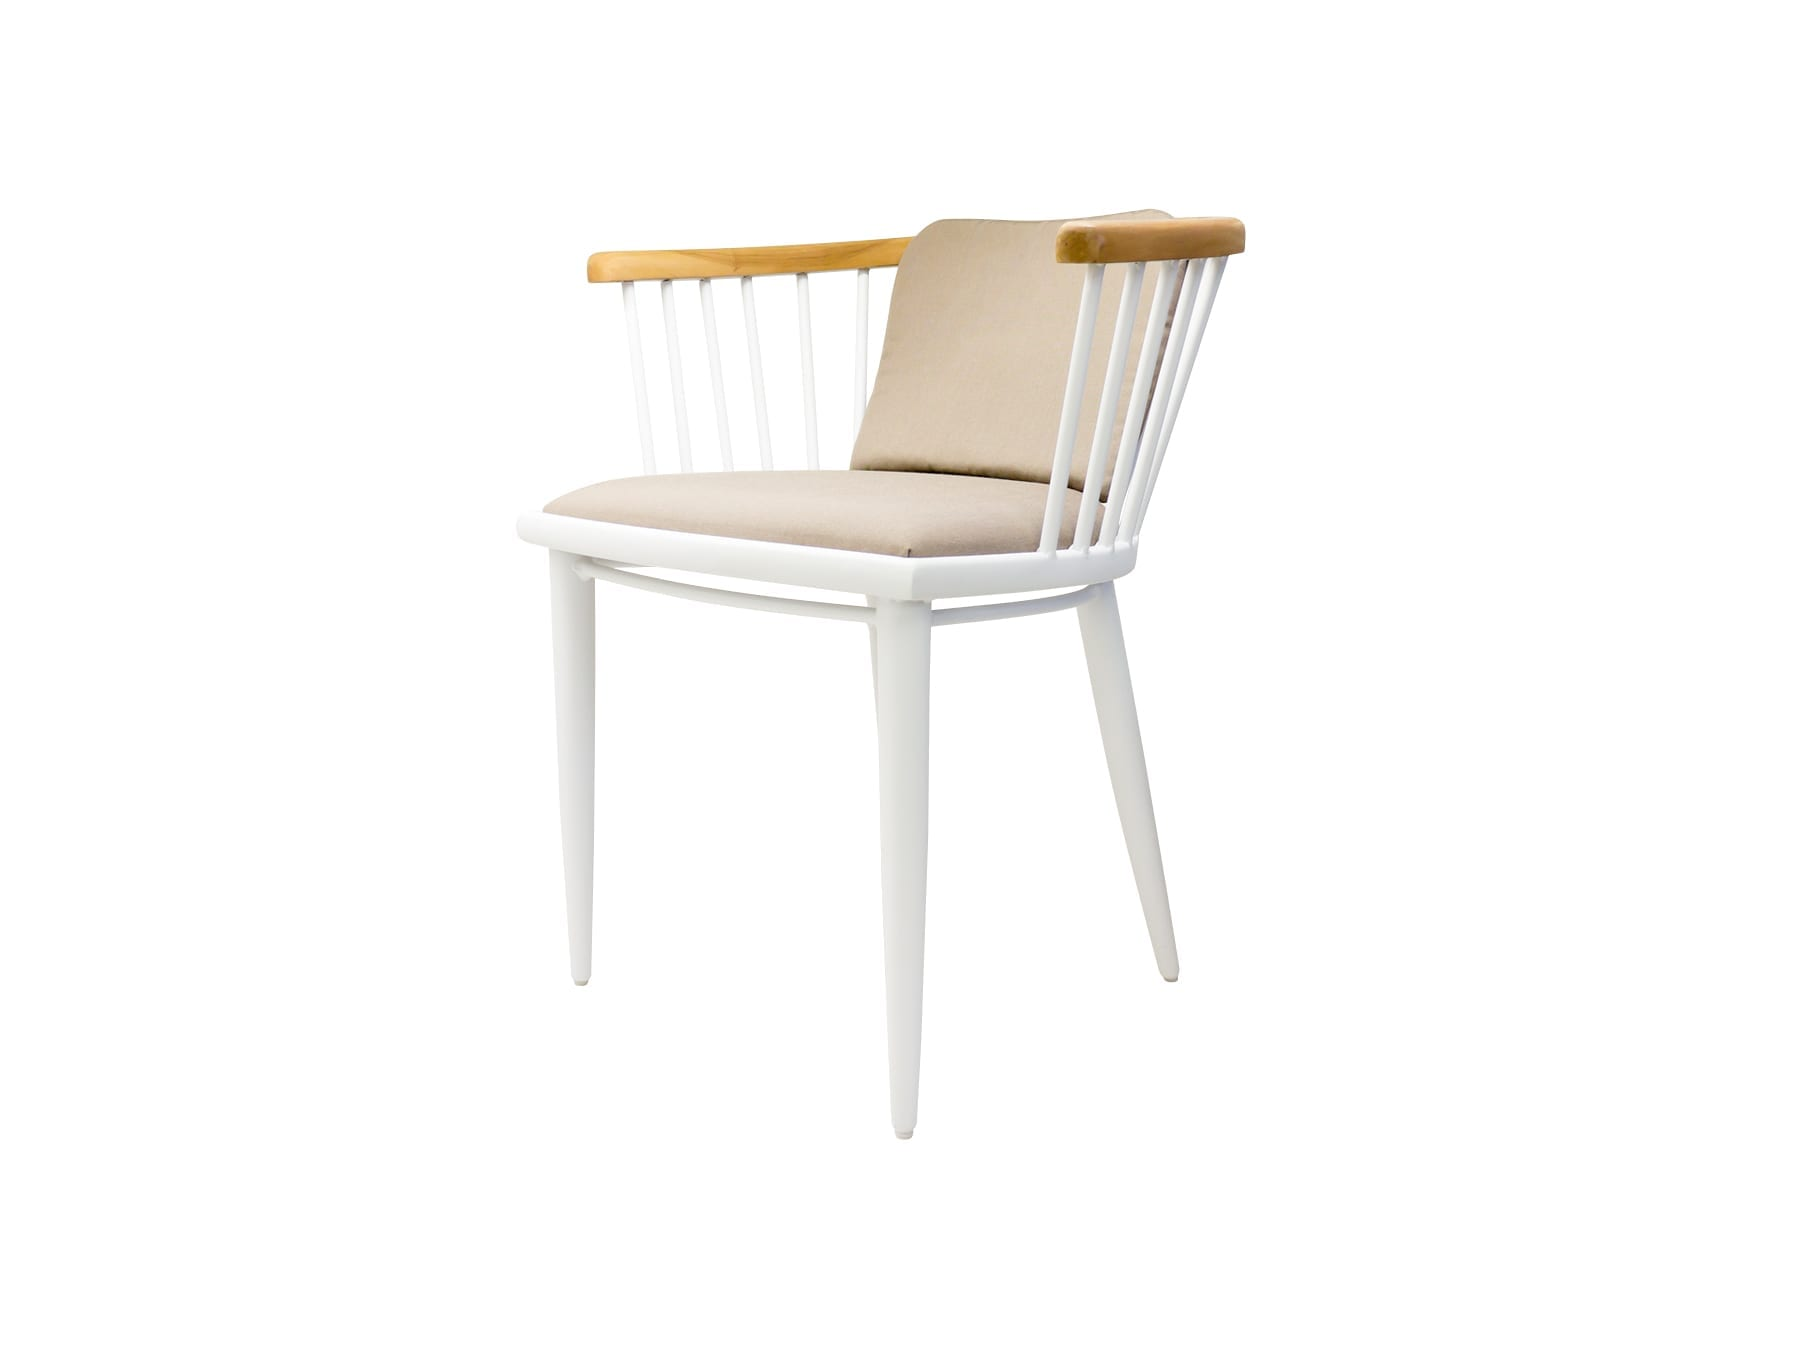 Portico Benjamin Dining Chair available at McKenzie & Willis